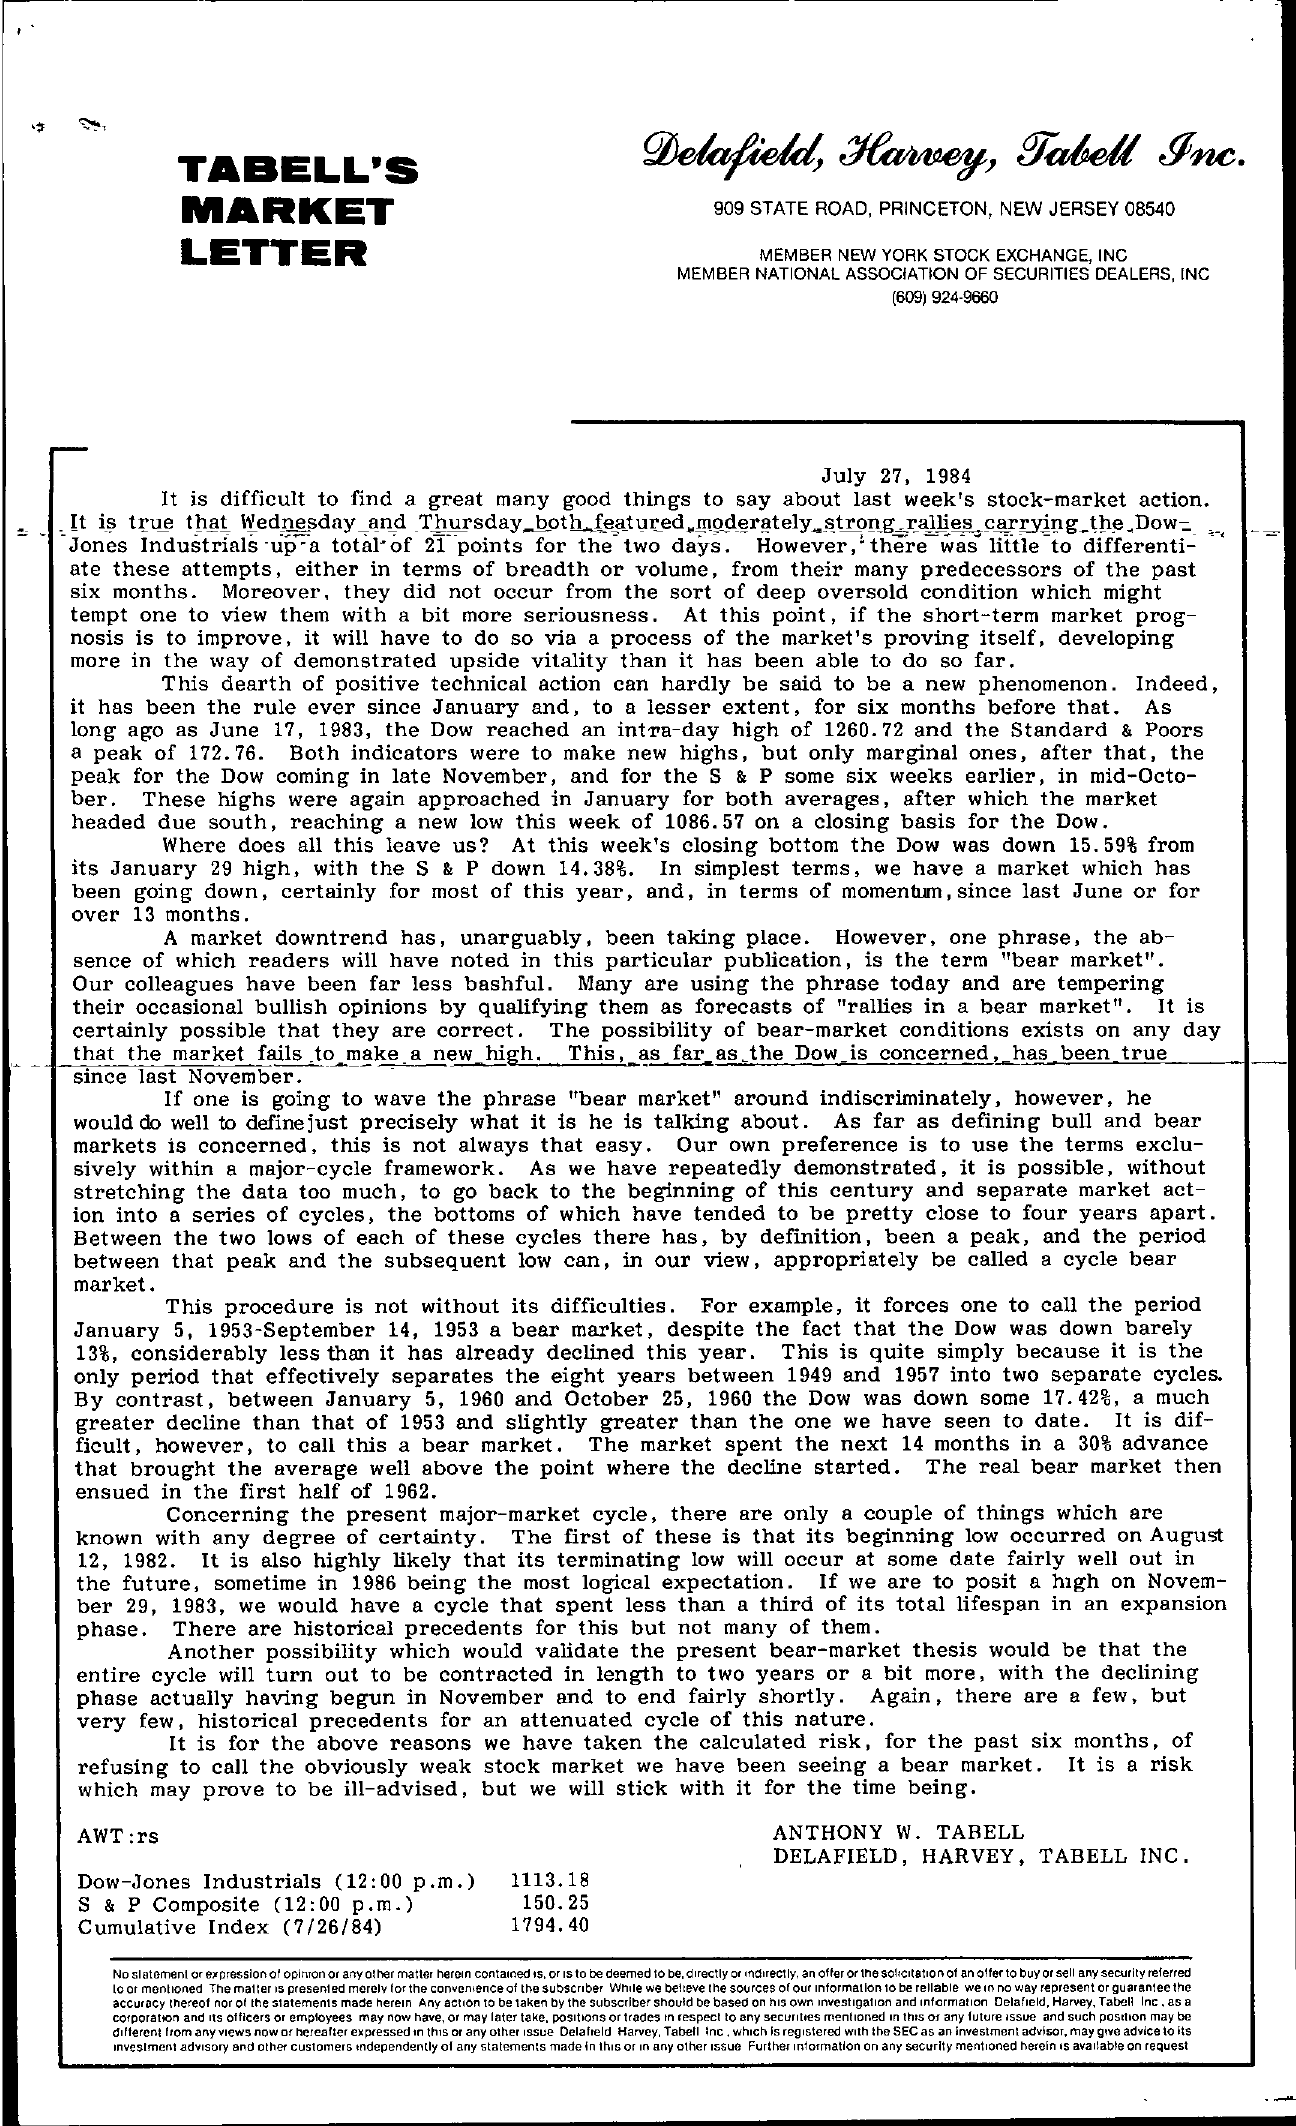 Tabell's Market Letter - July 27, 1984